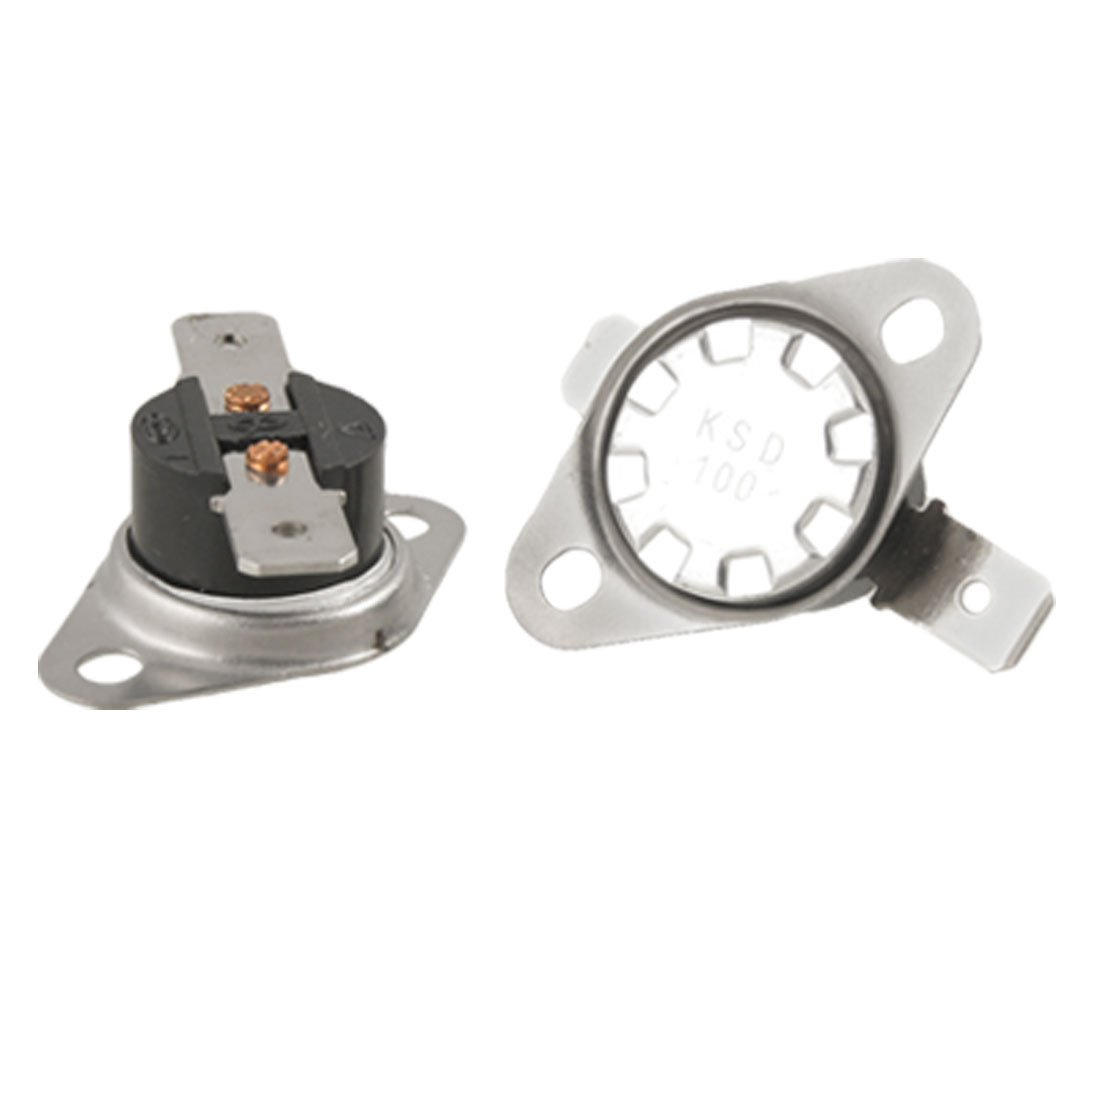 uxcell KSD Series Temperature Control Switch Thermostat 100 Celsius N.C 2pcs